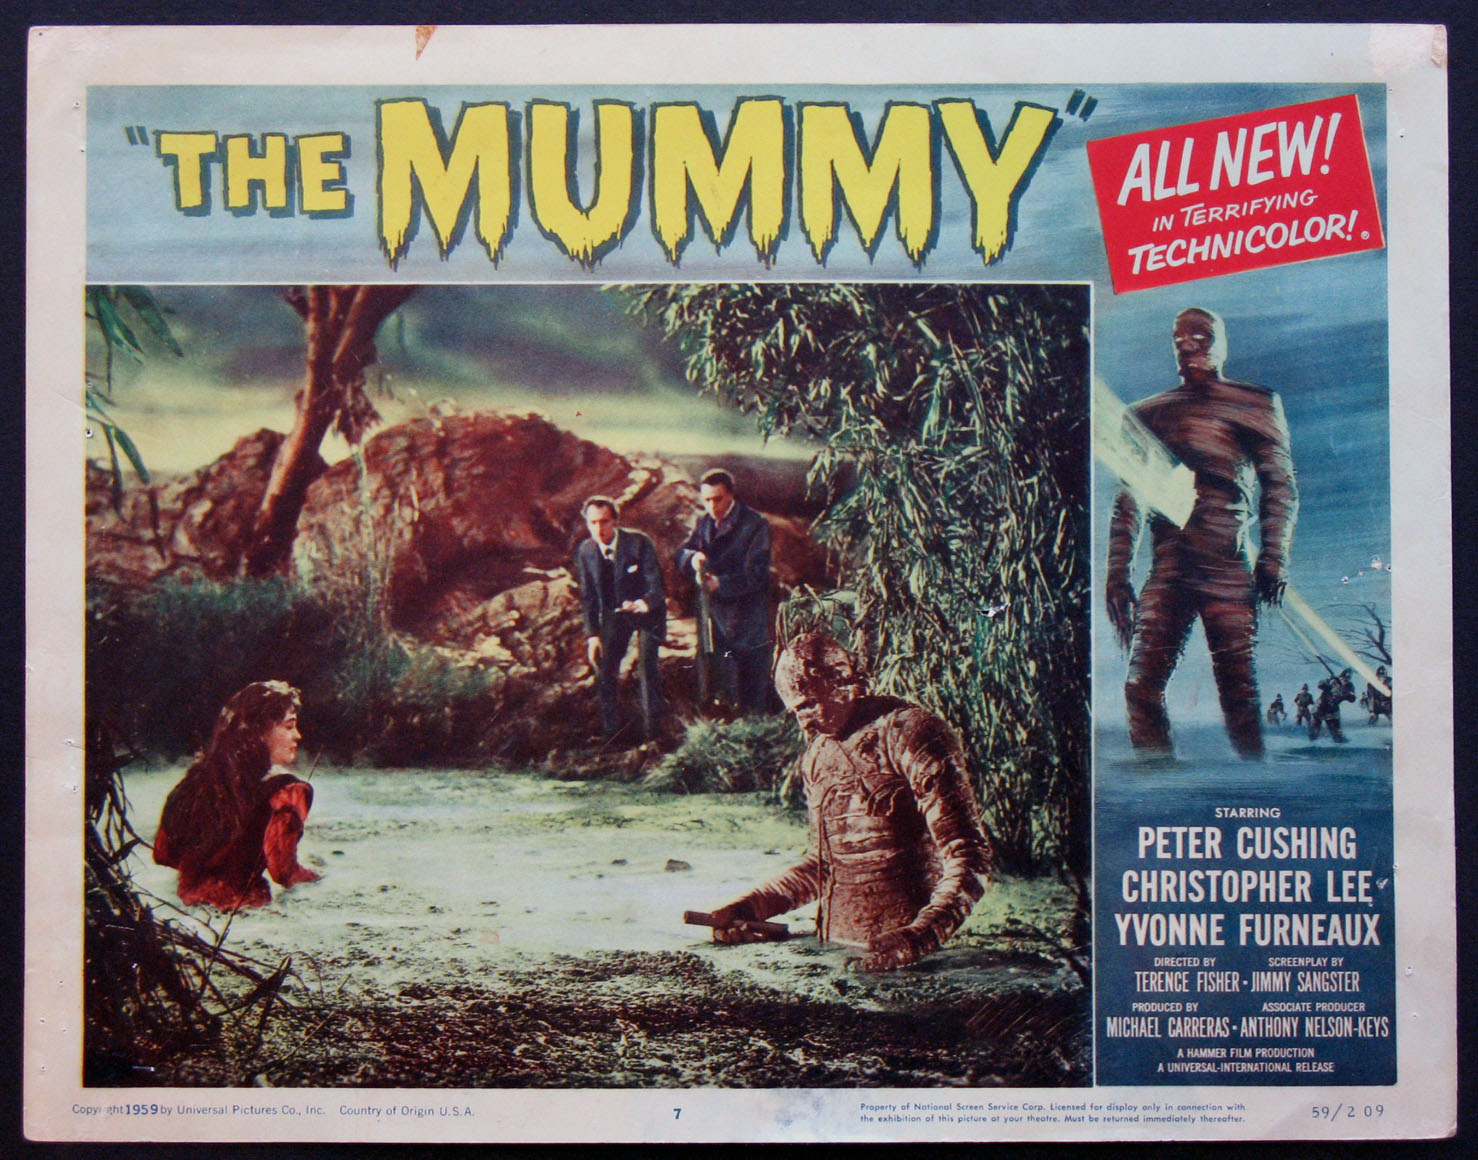 MUMMY, THE (The Mummy) @ FilmPosters.com